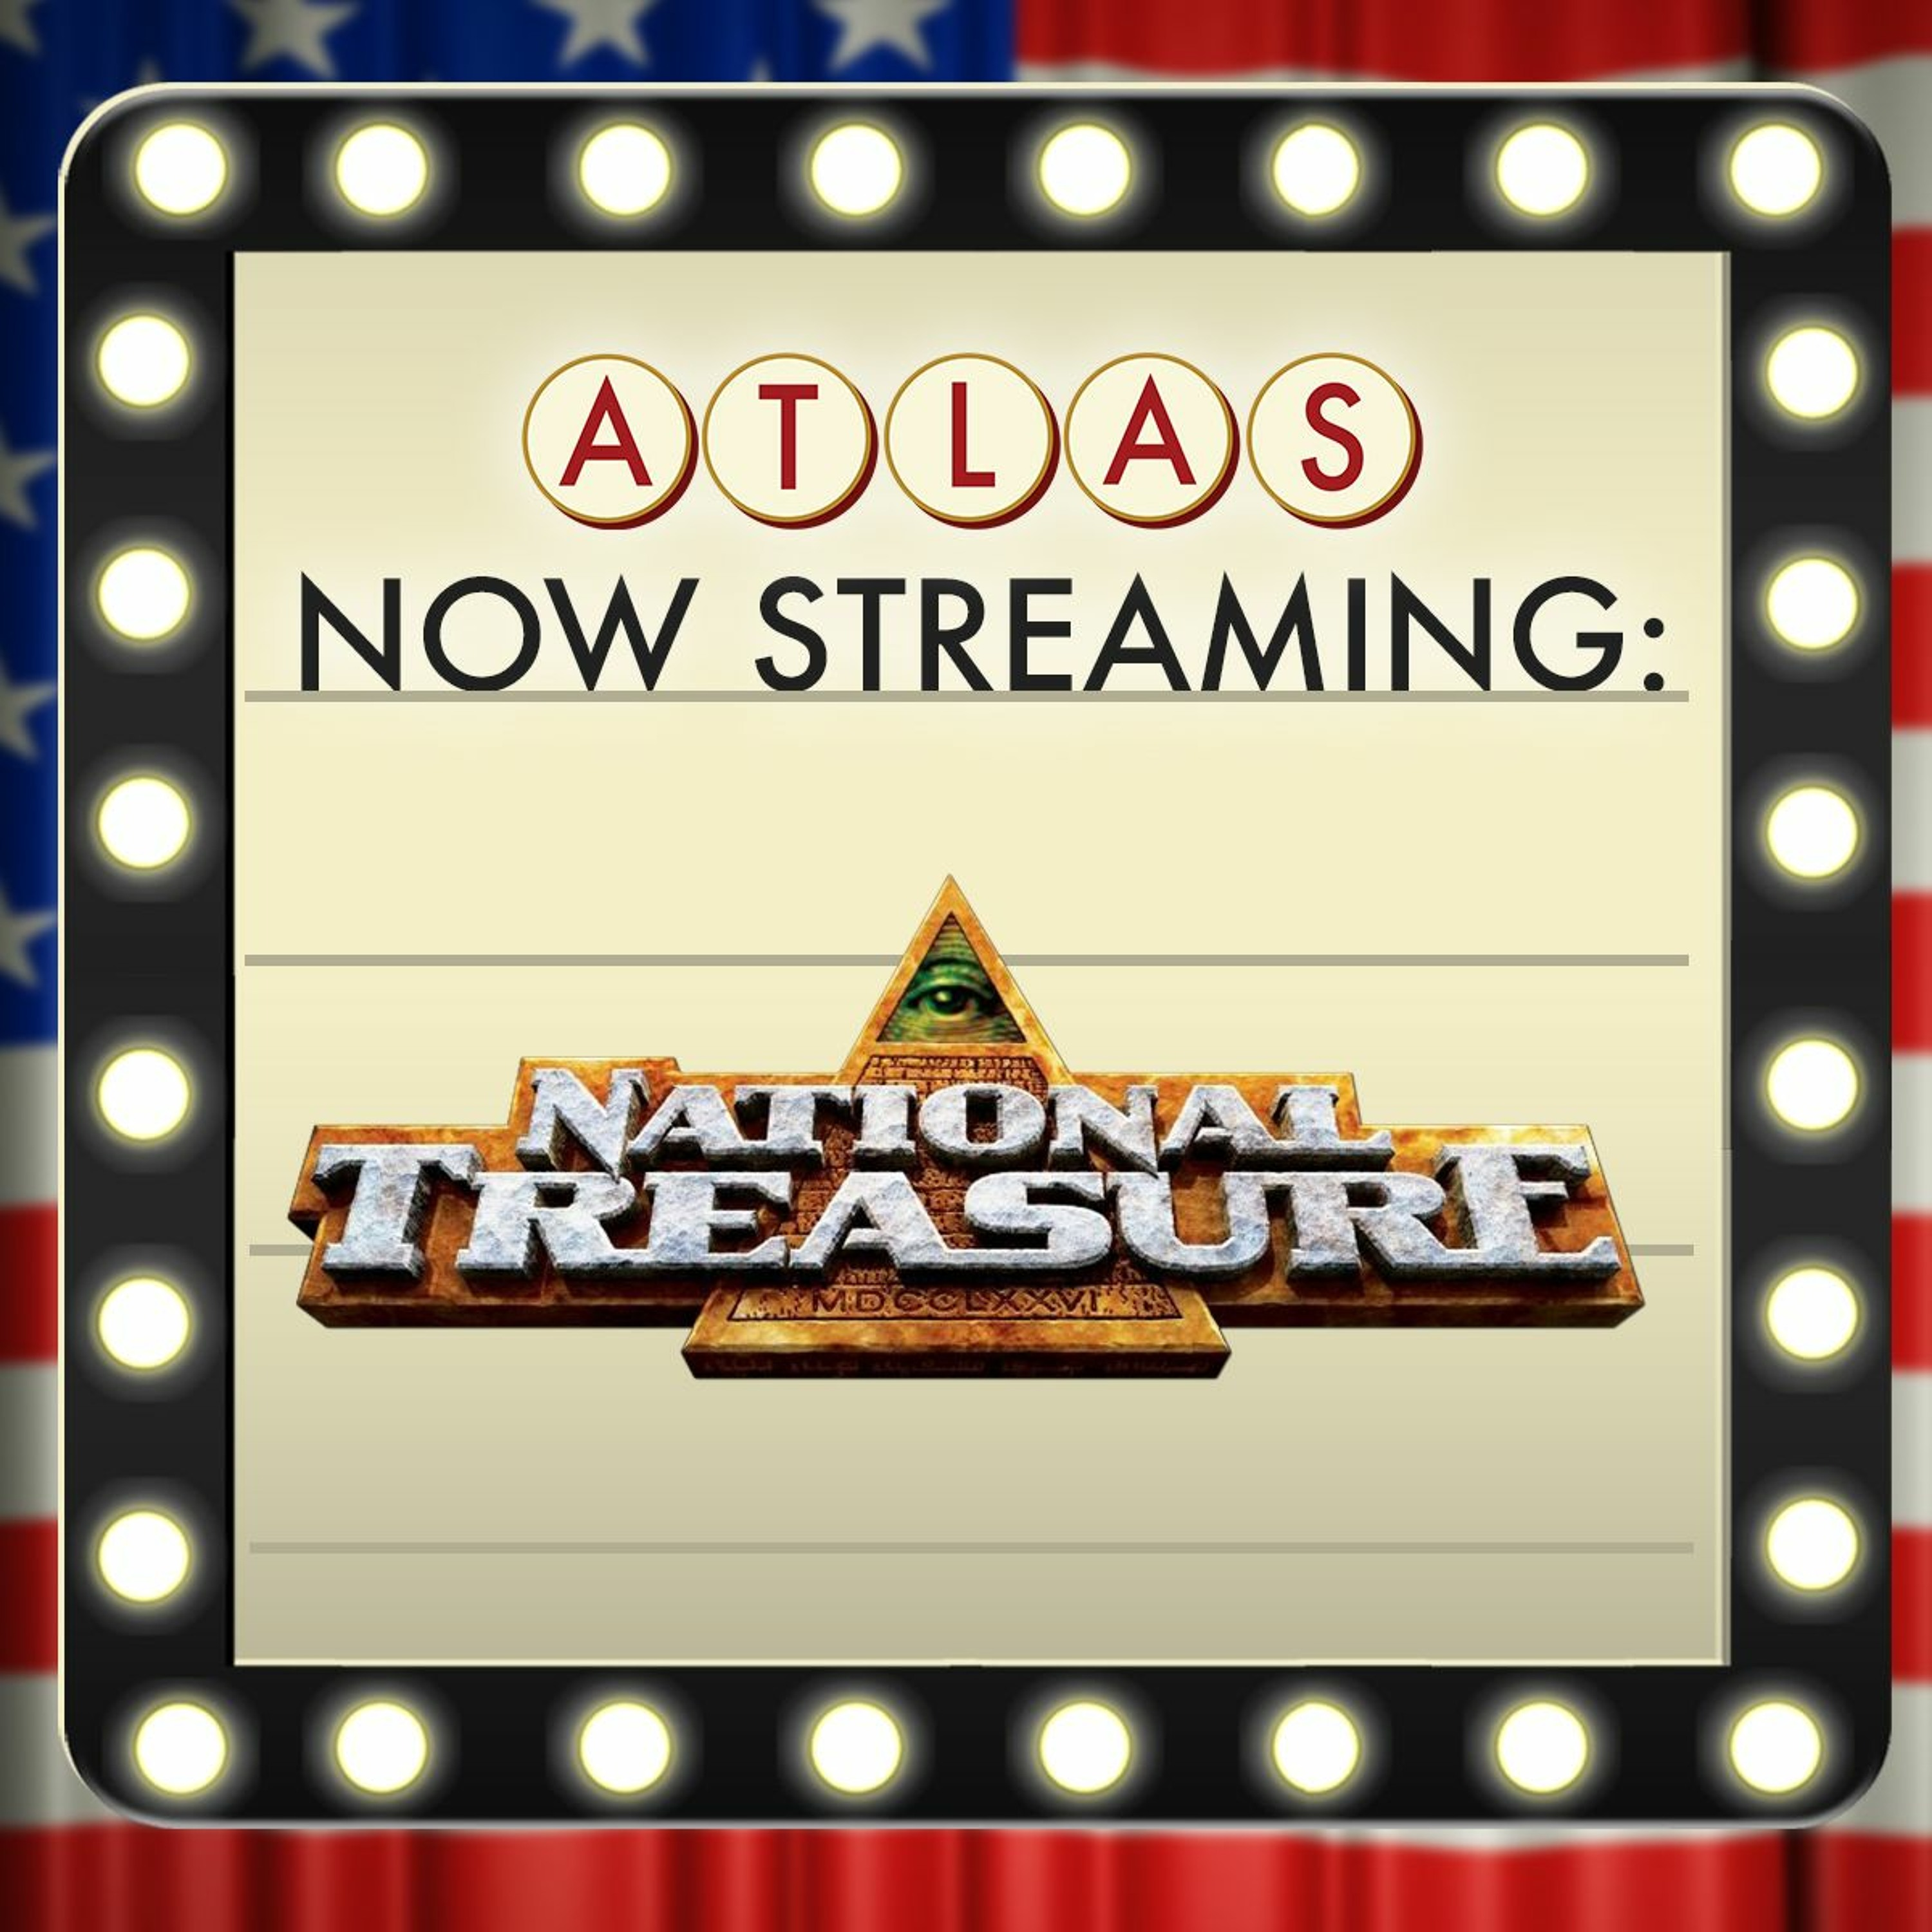 National Treasure on the 4th of July - Atlas: Now Streaming 71